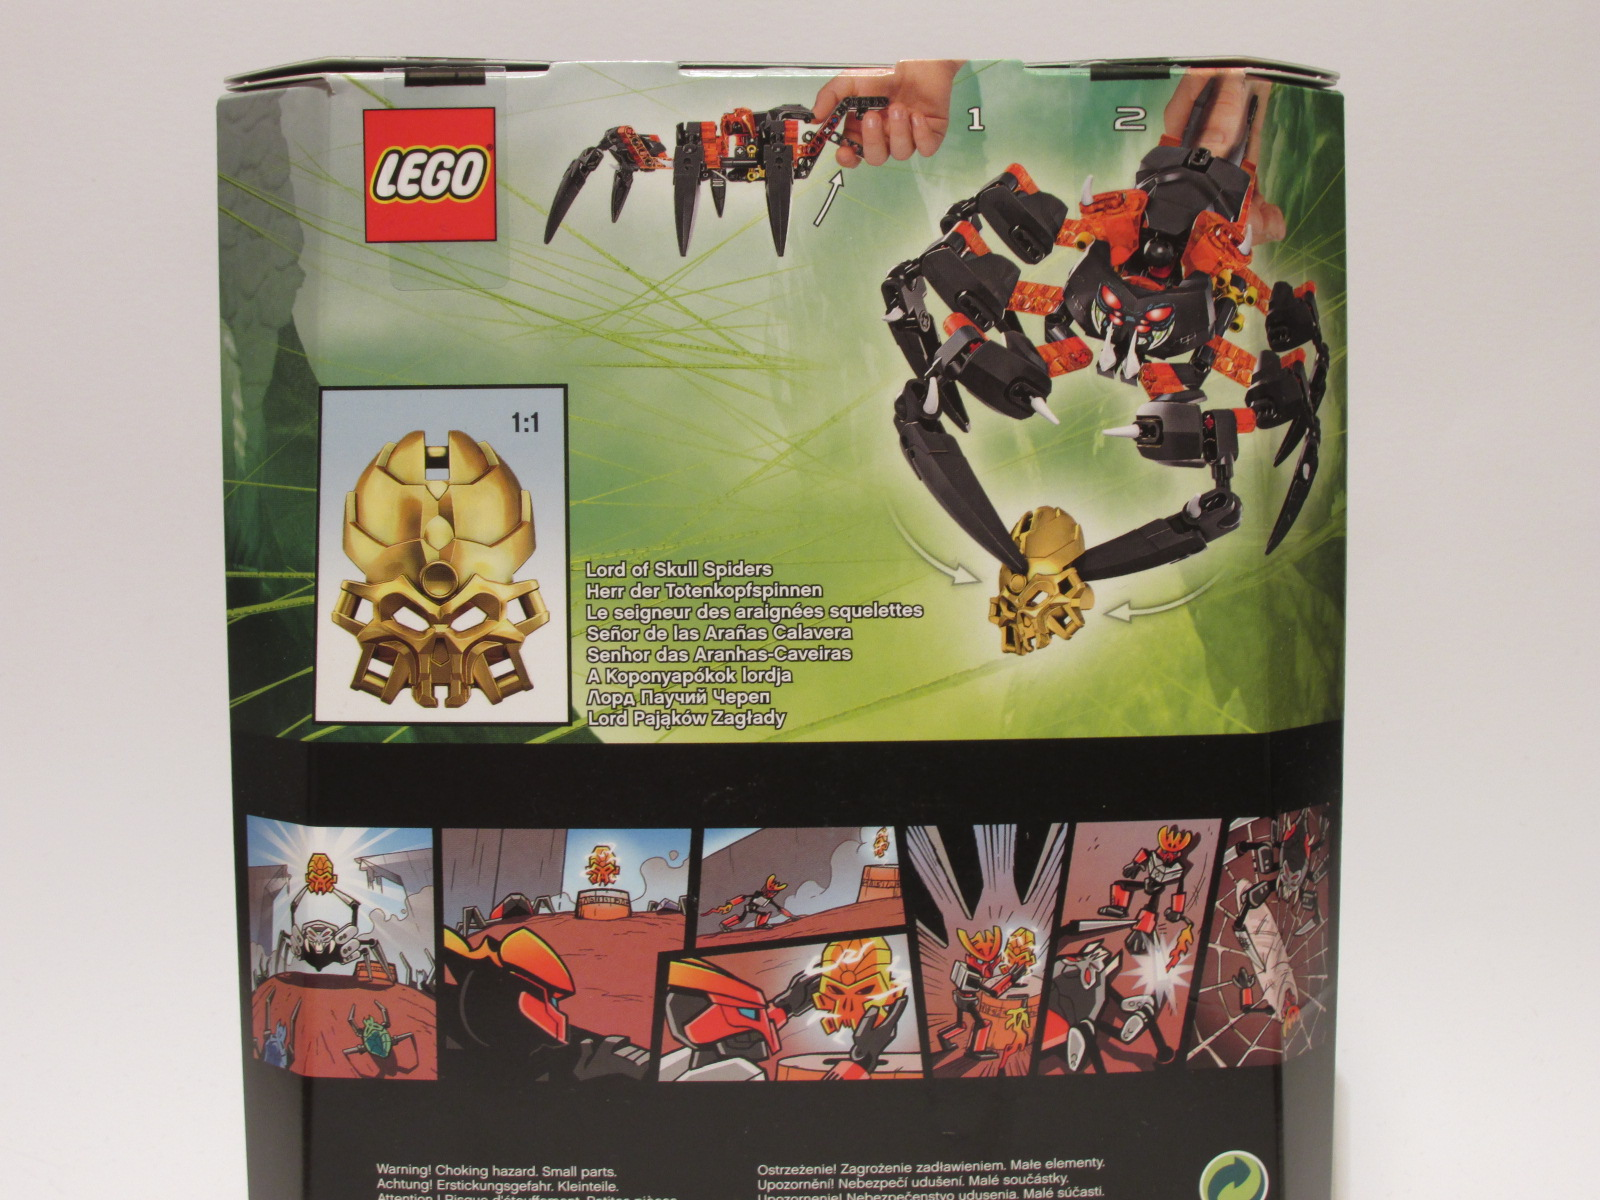 Mint In Box Lego Bionicle Lord Of Skull Spiders The Website Of Doom